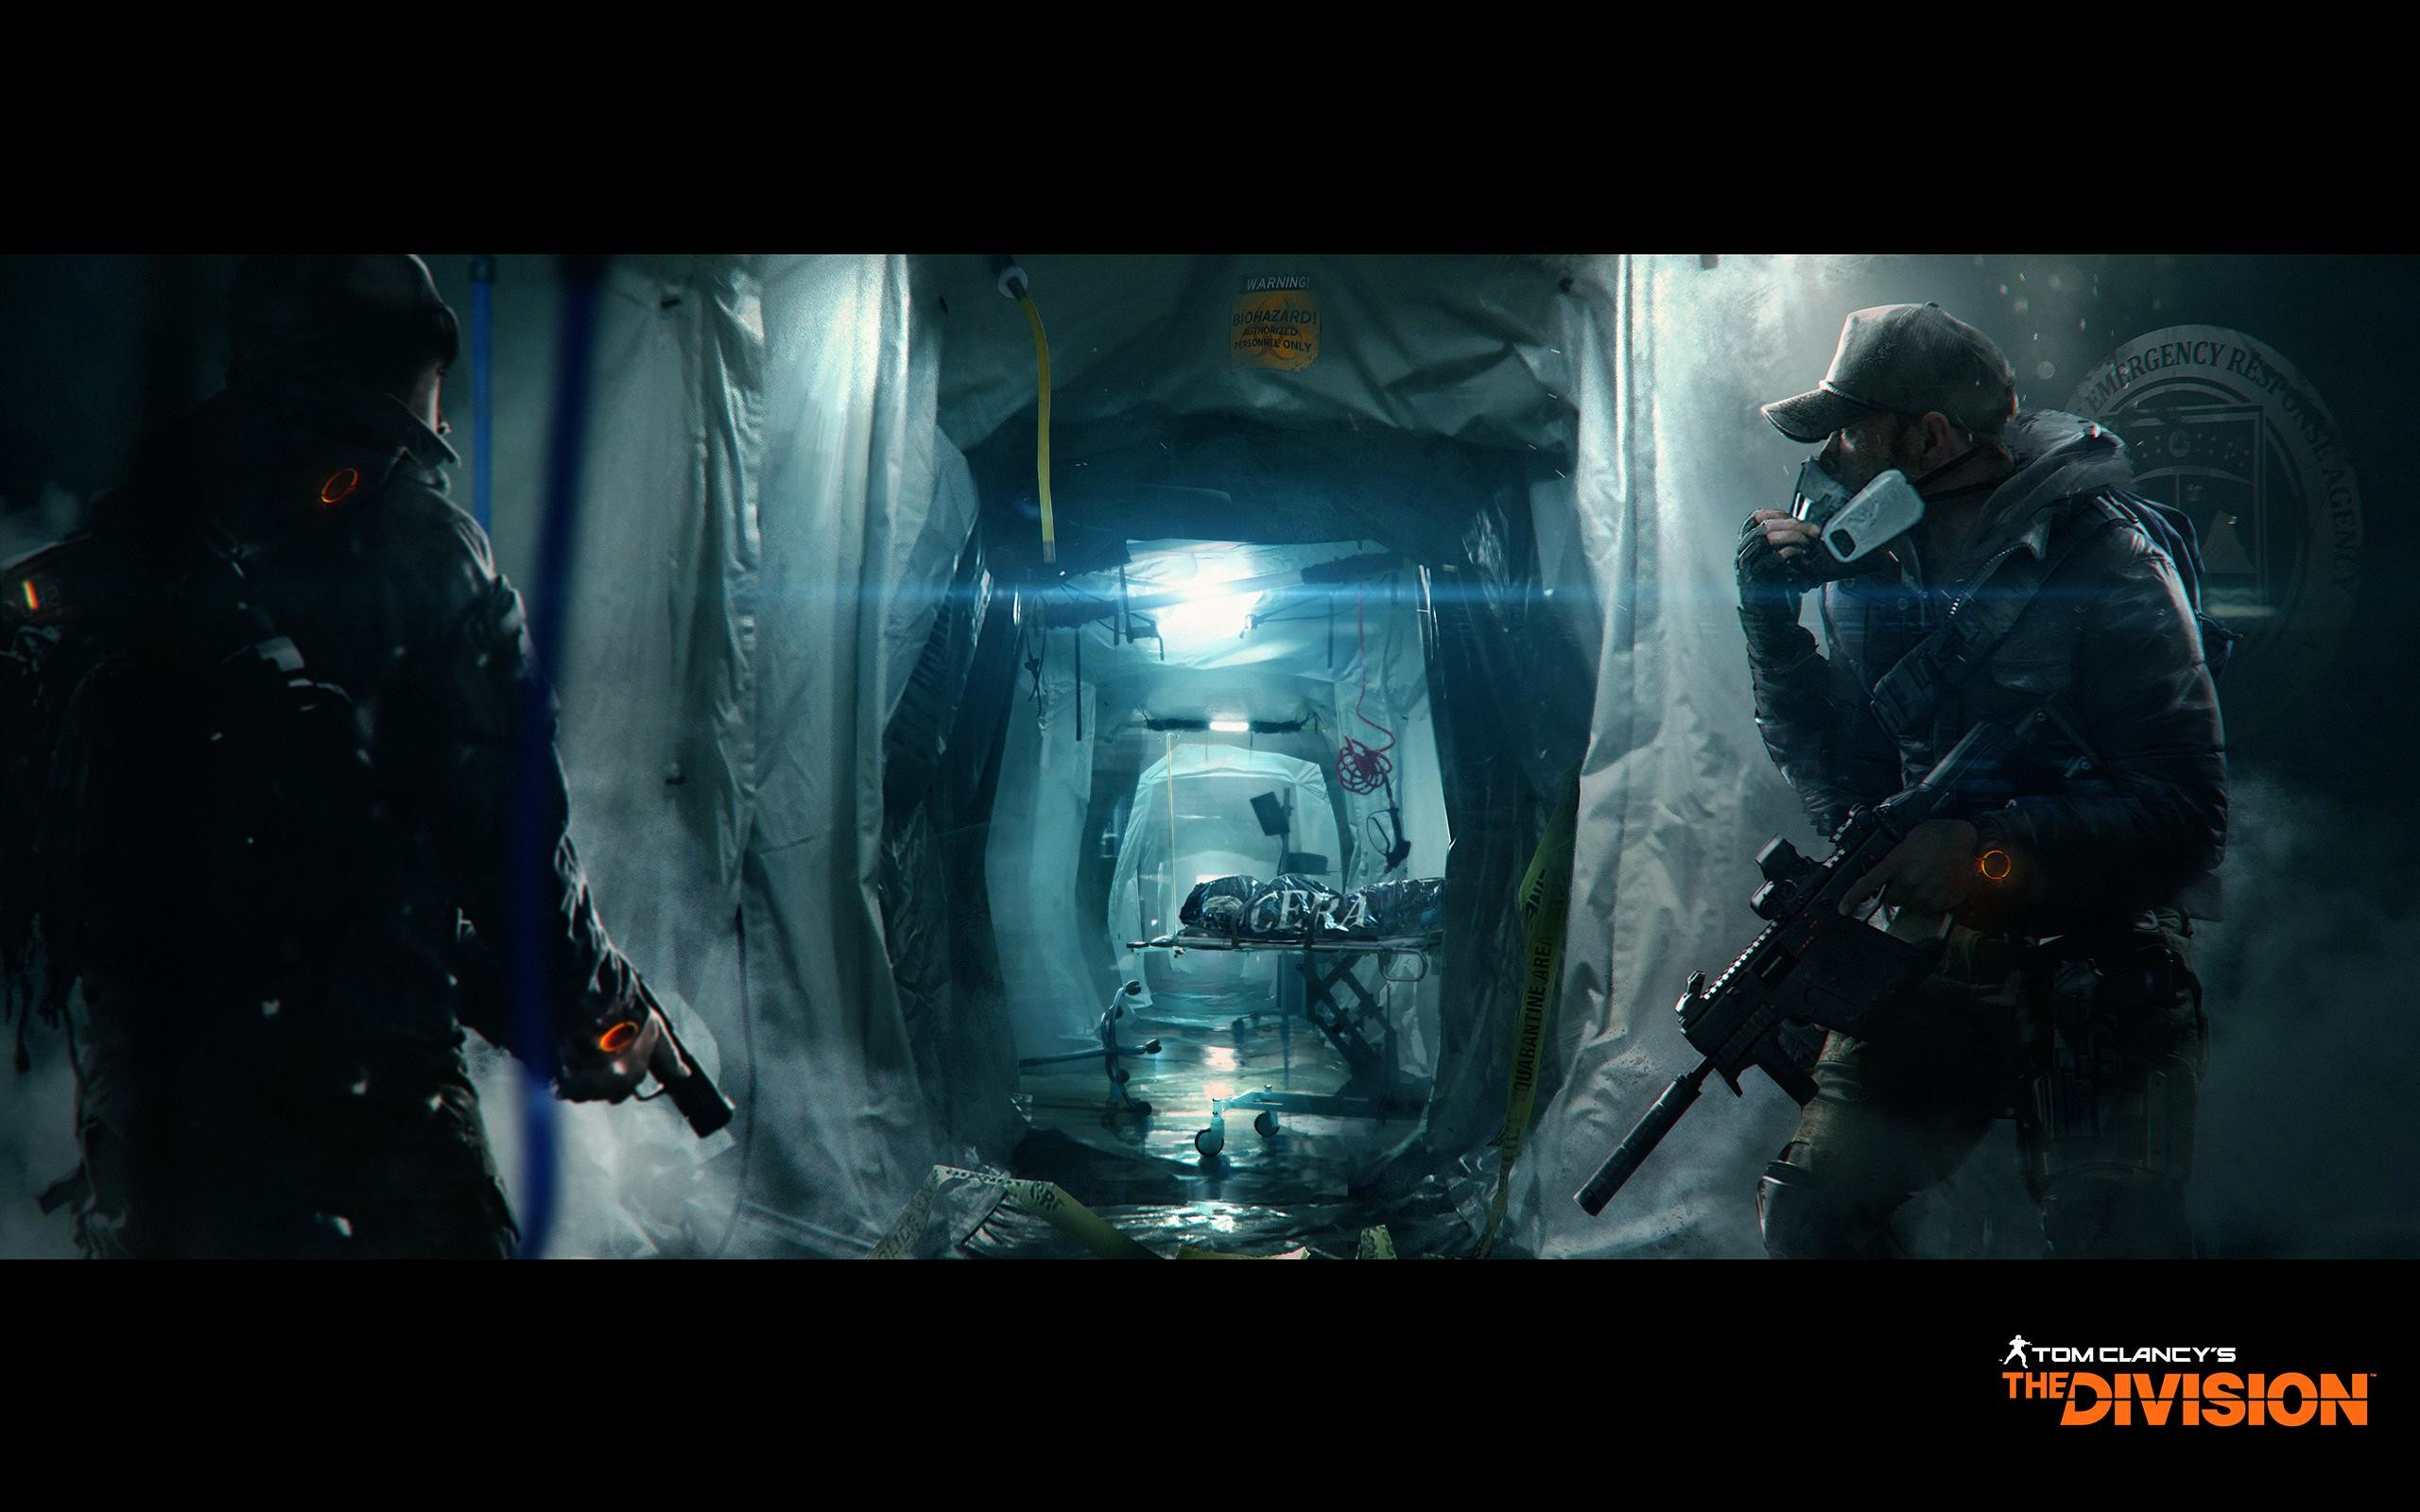 The Division hd wallpaper